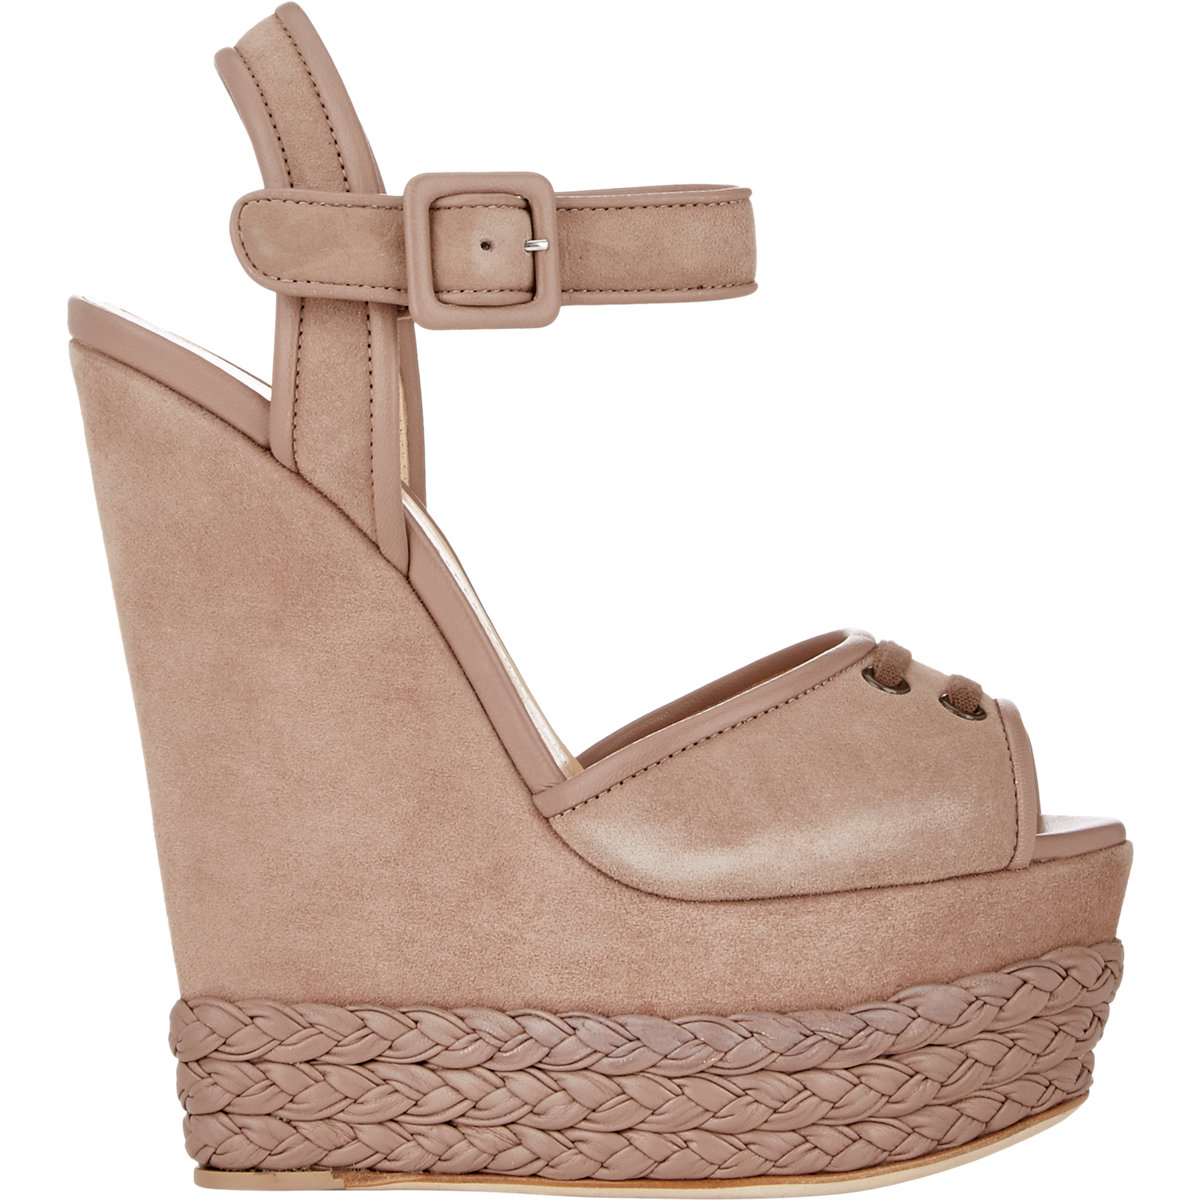 62f696f6956b Lyst - Giuseppe Zanotti Braided Platform-wedge Sandals in Brown